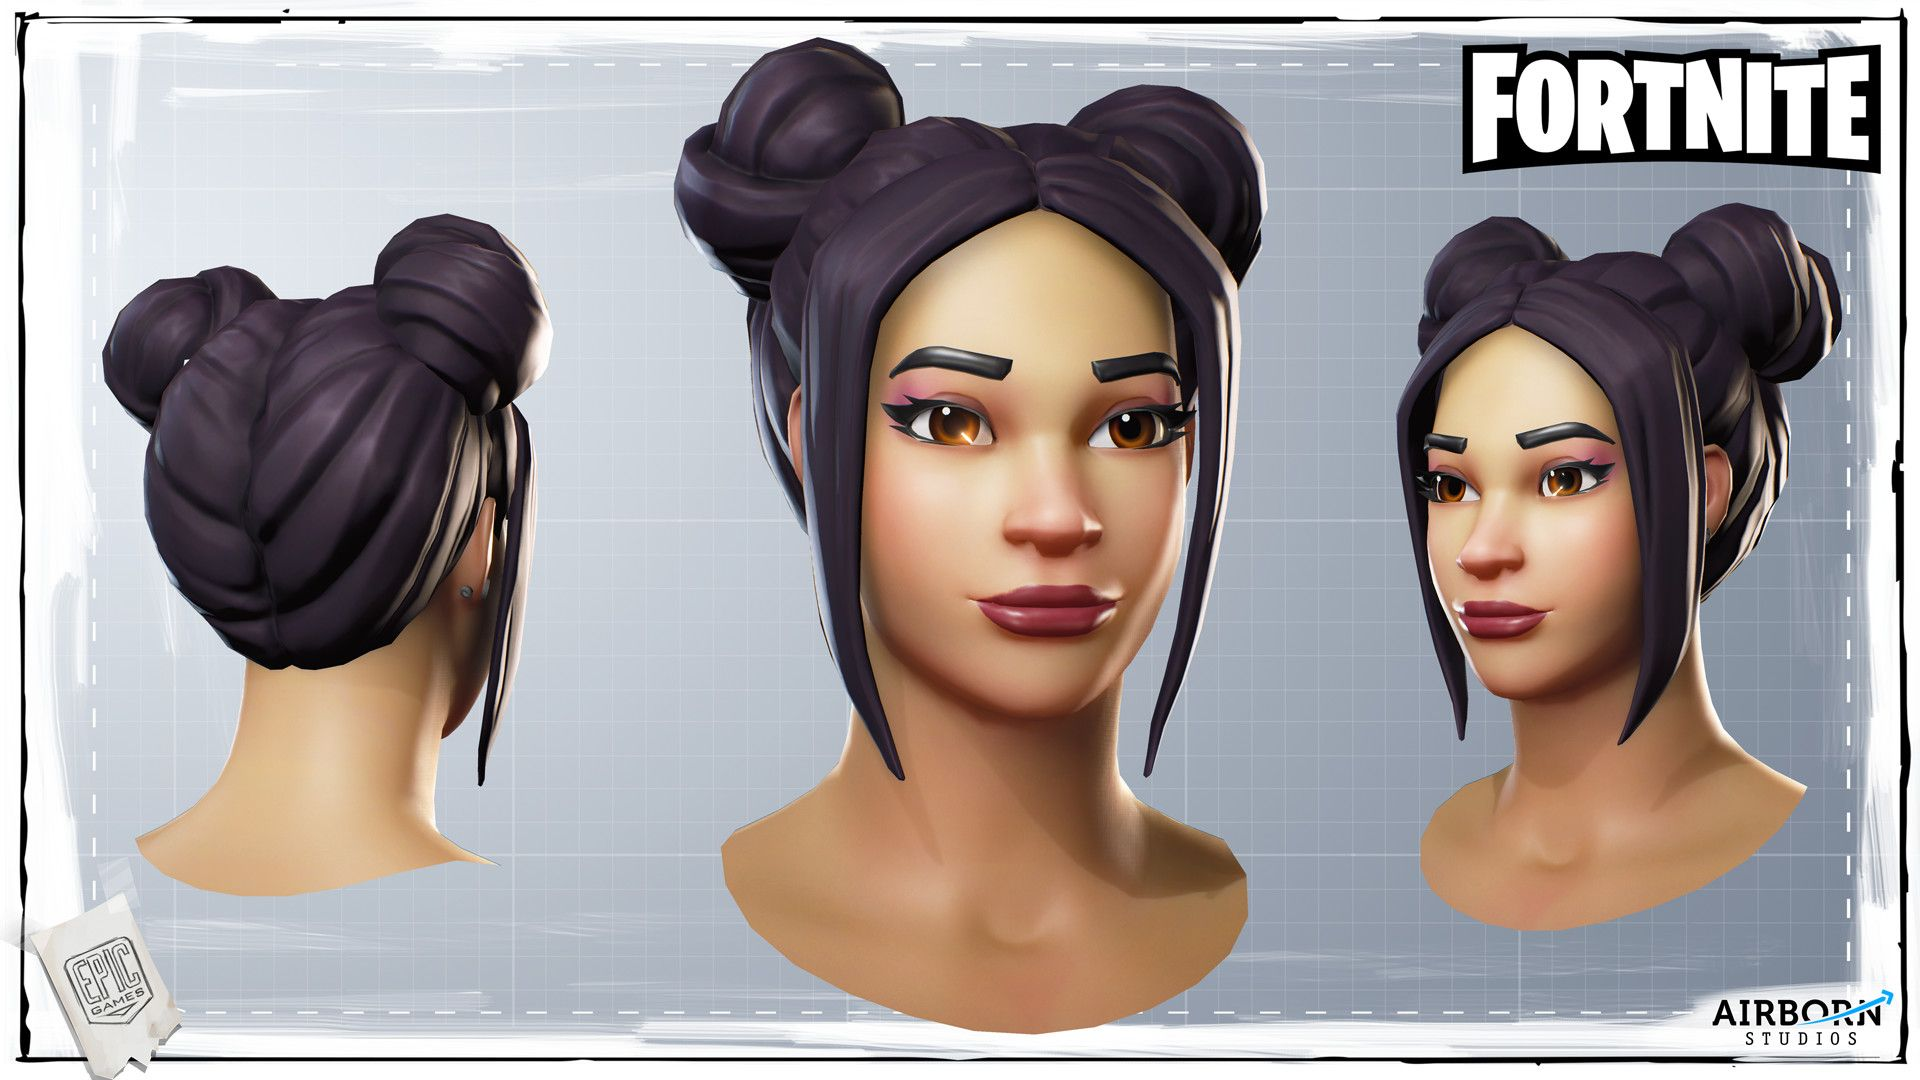 ArtStation - Fortnite Character Head Batch 04, Airborn